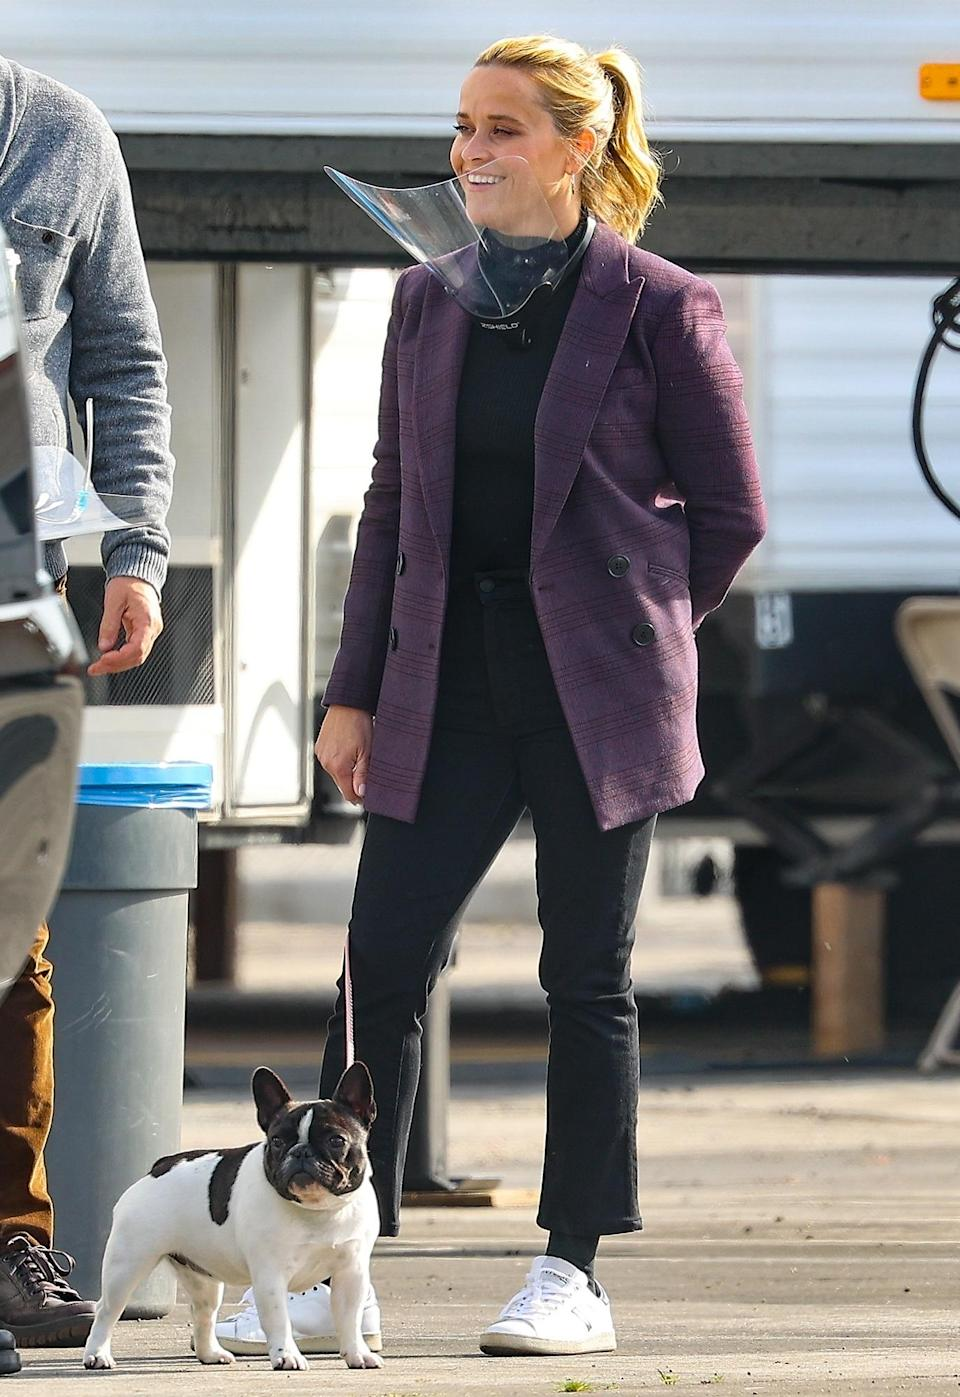 <p>Reese Witherspoon brings her dog along to the set of <em>The Morning Show</em> on Monday in L.A.</p>